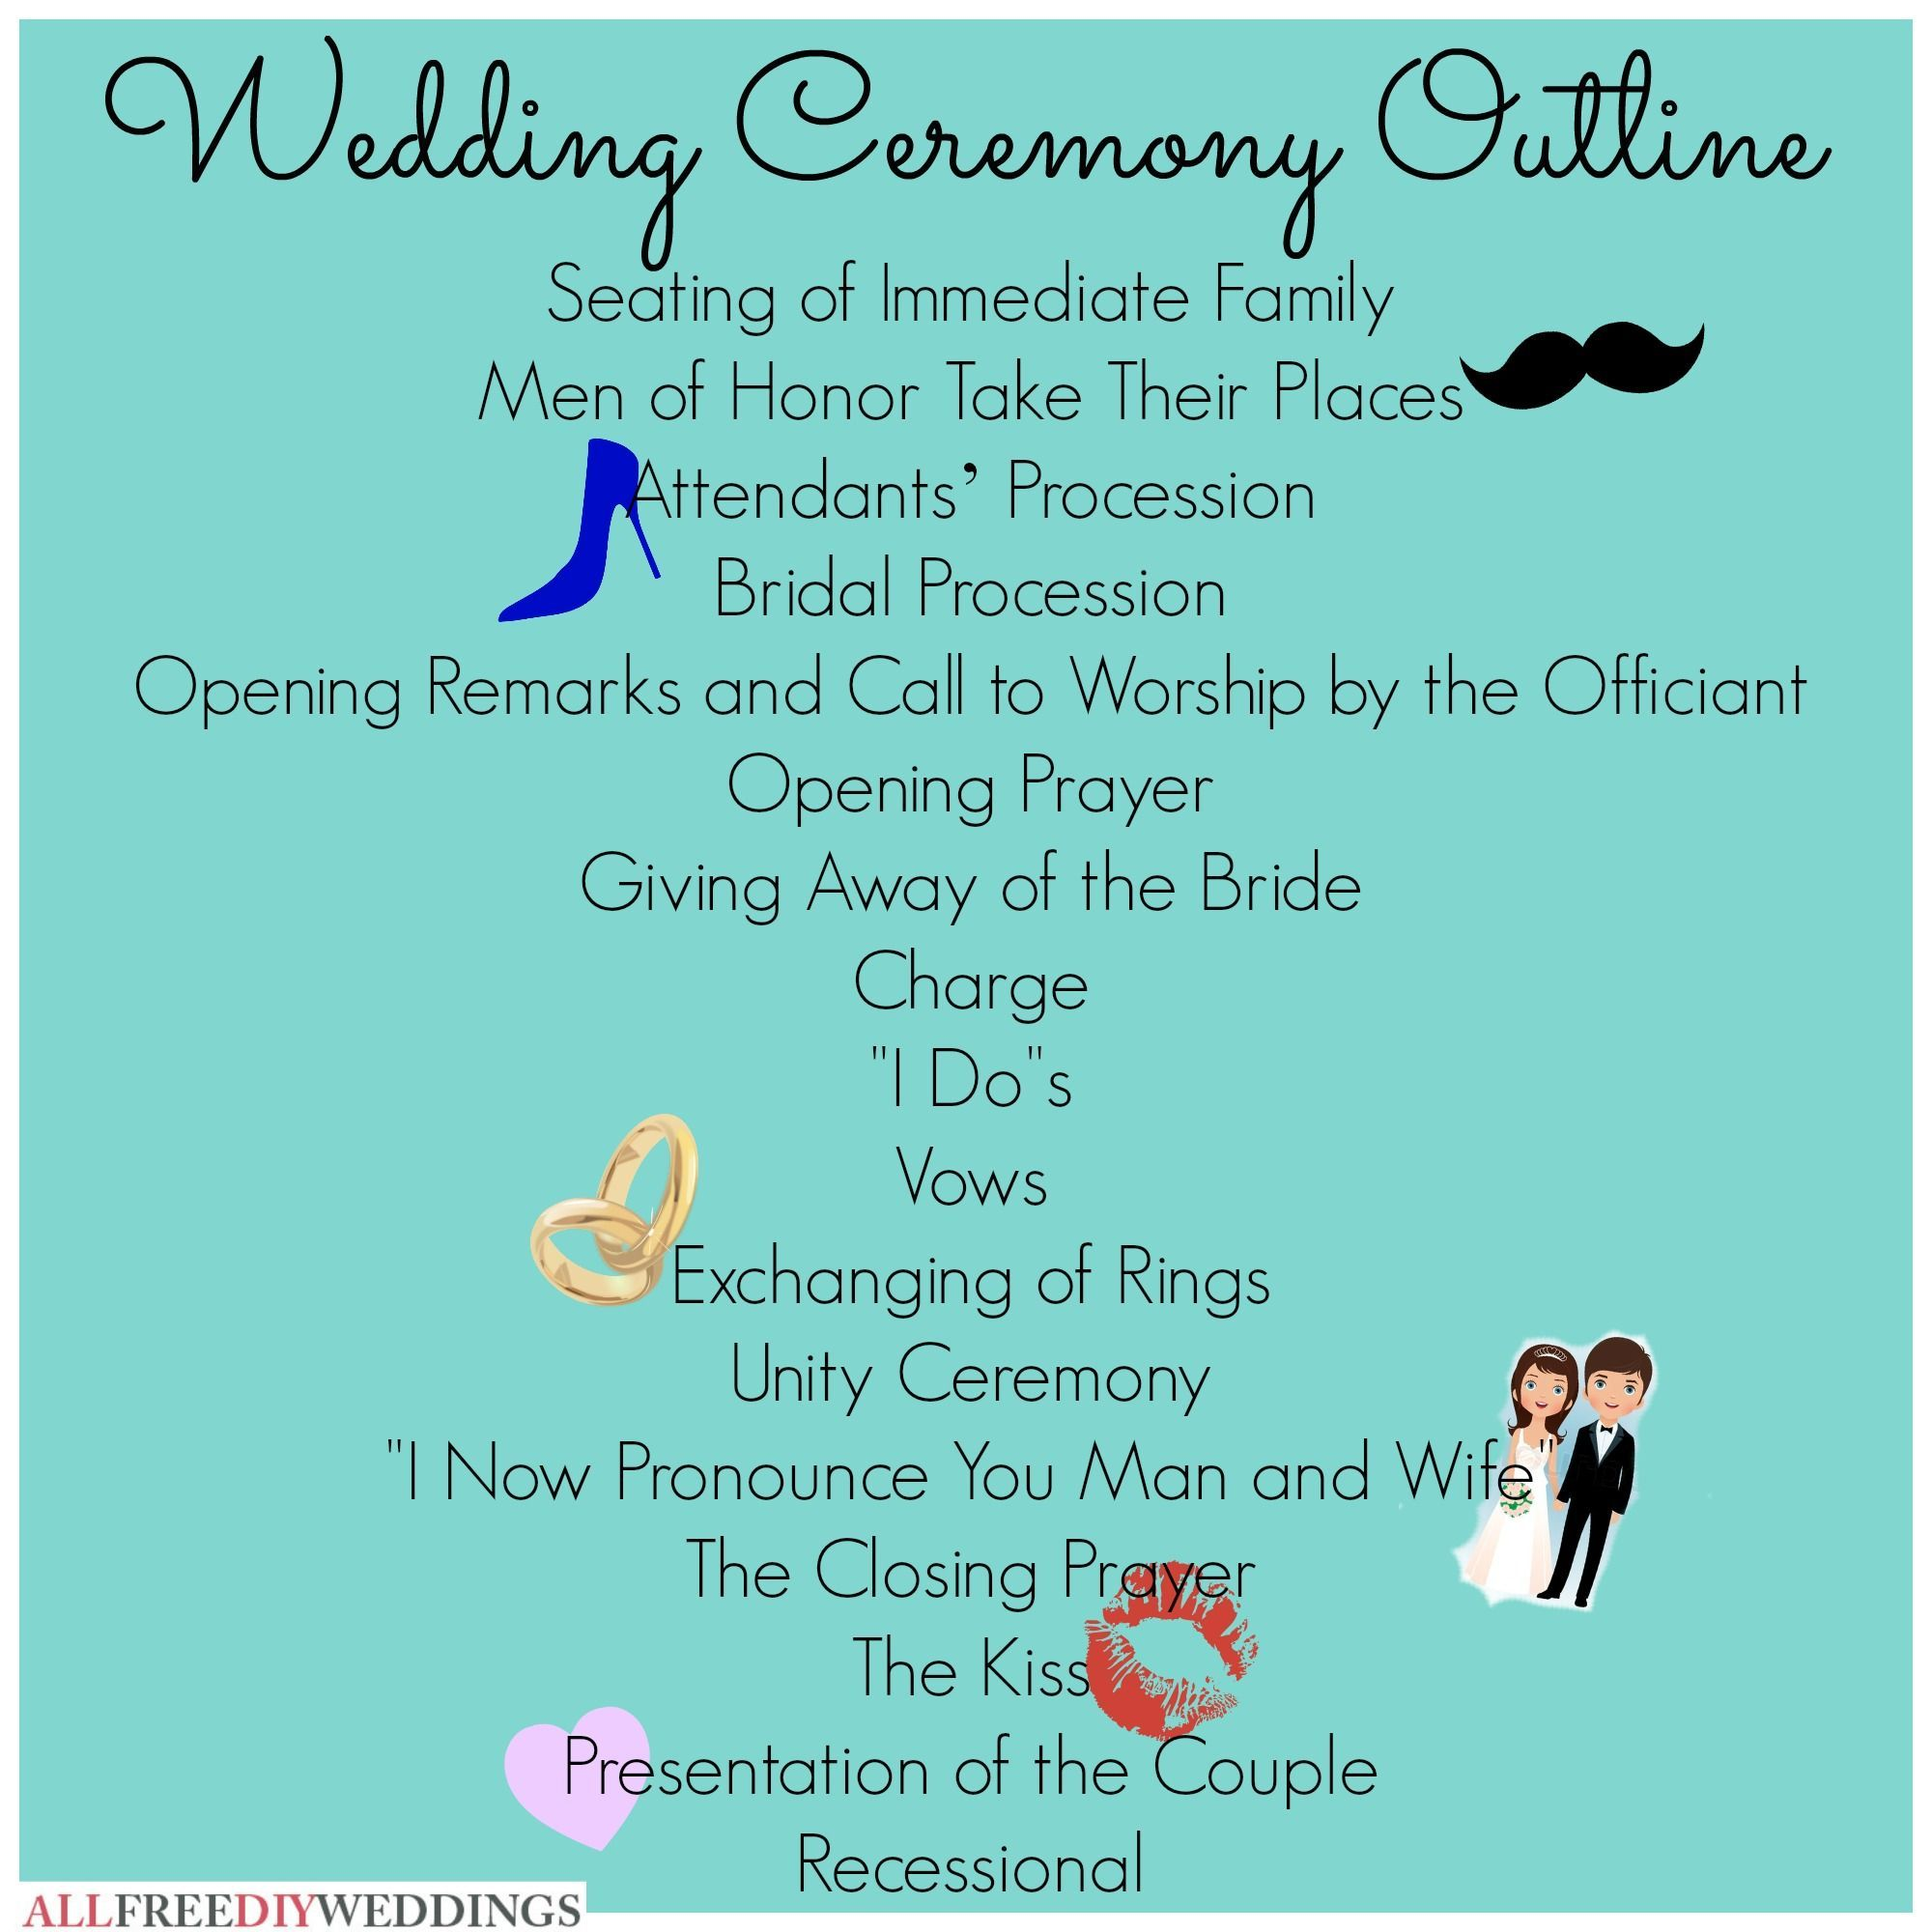 Finally The Wedding Ceremony Outline Spelled Out Clearly